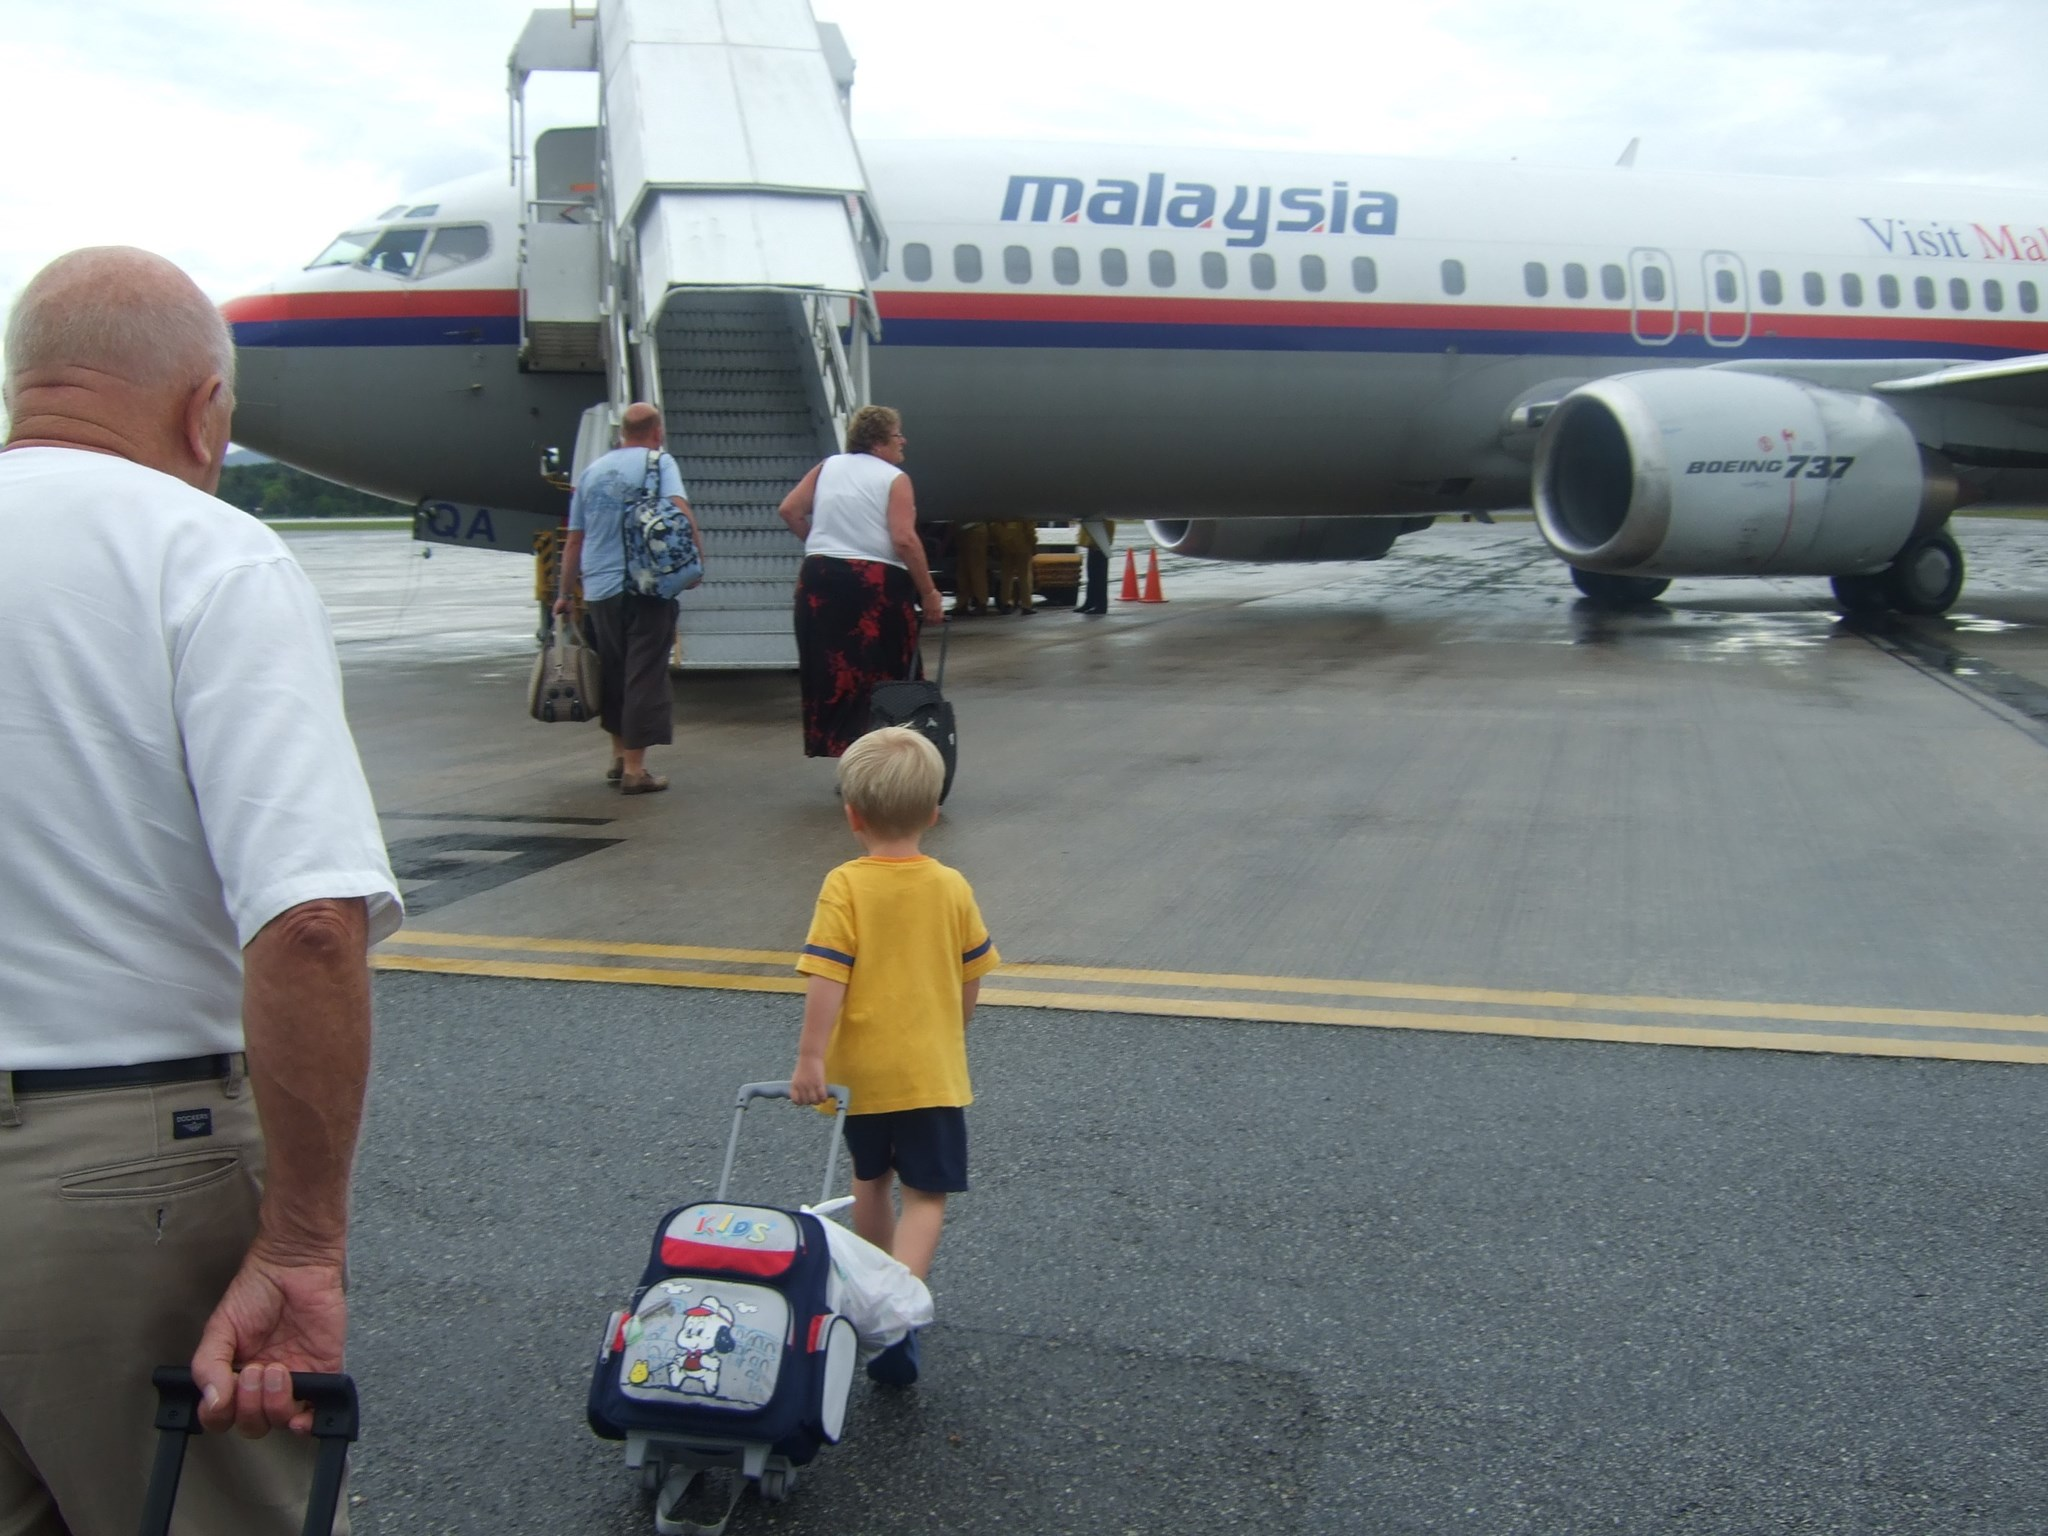 Supervising Harry Langkawi bound. Second flight after 14 hours in the air.